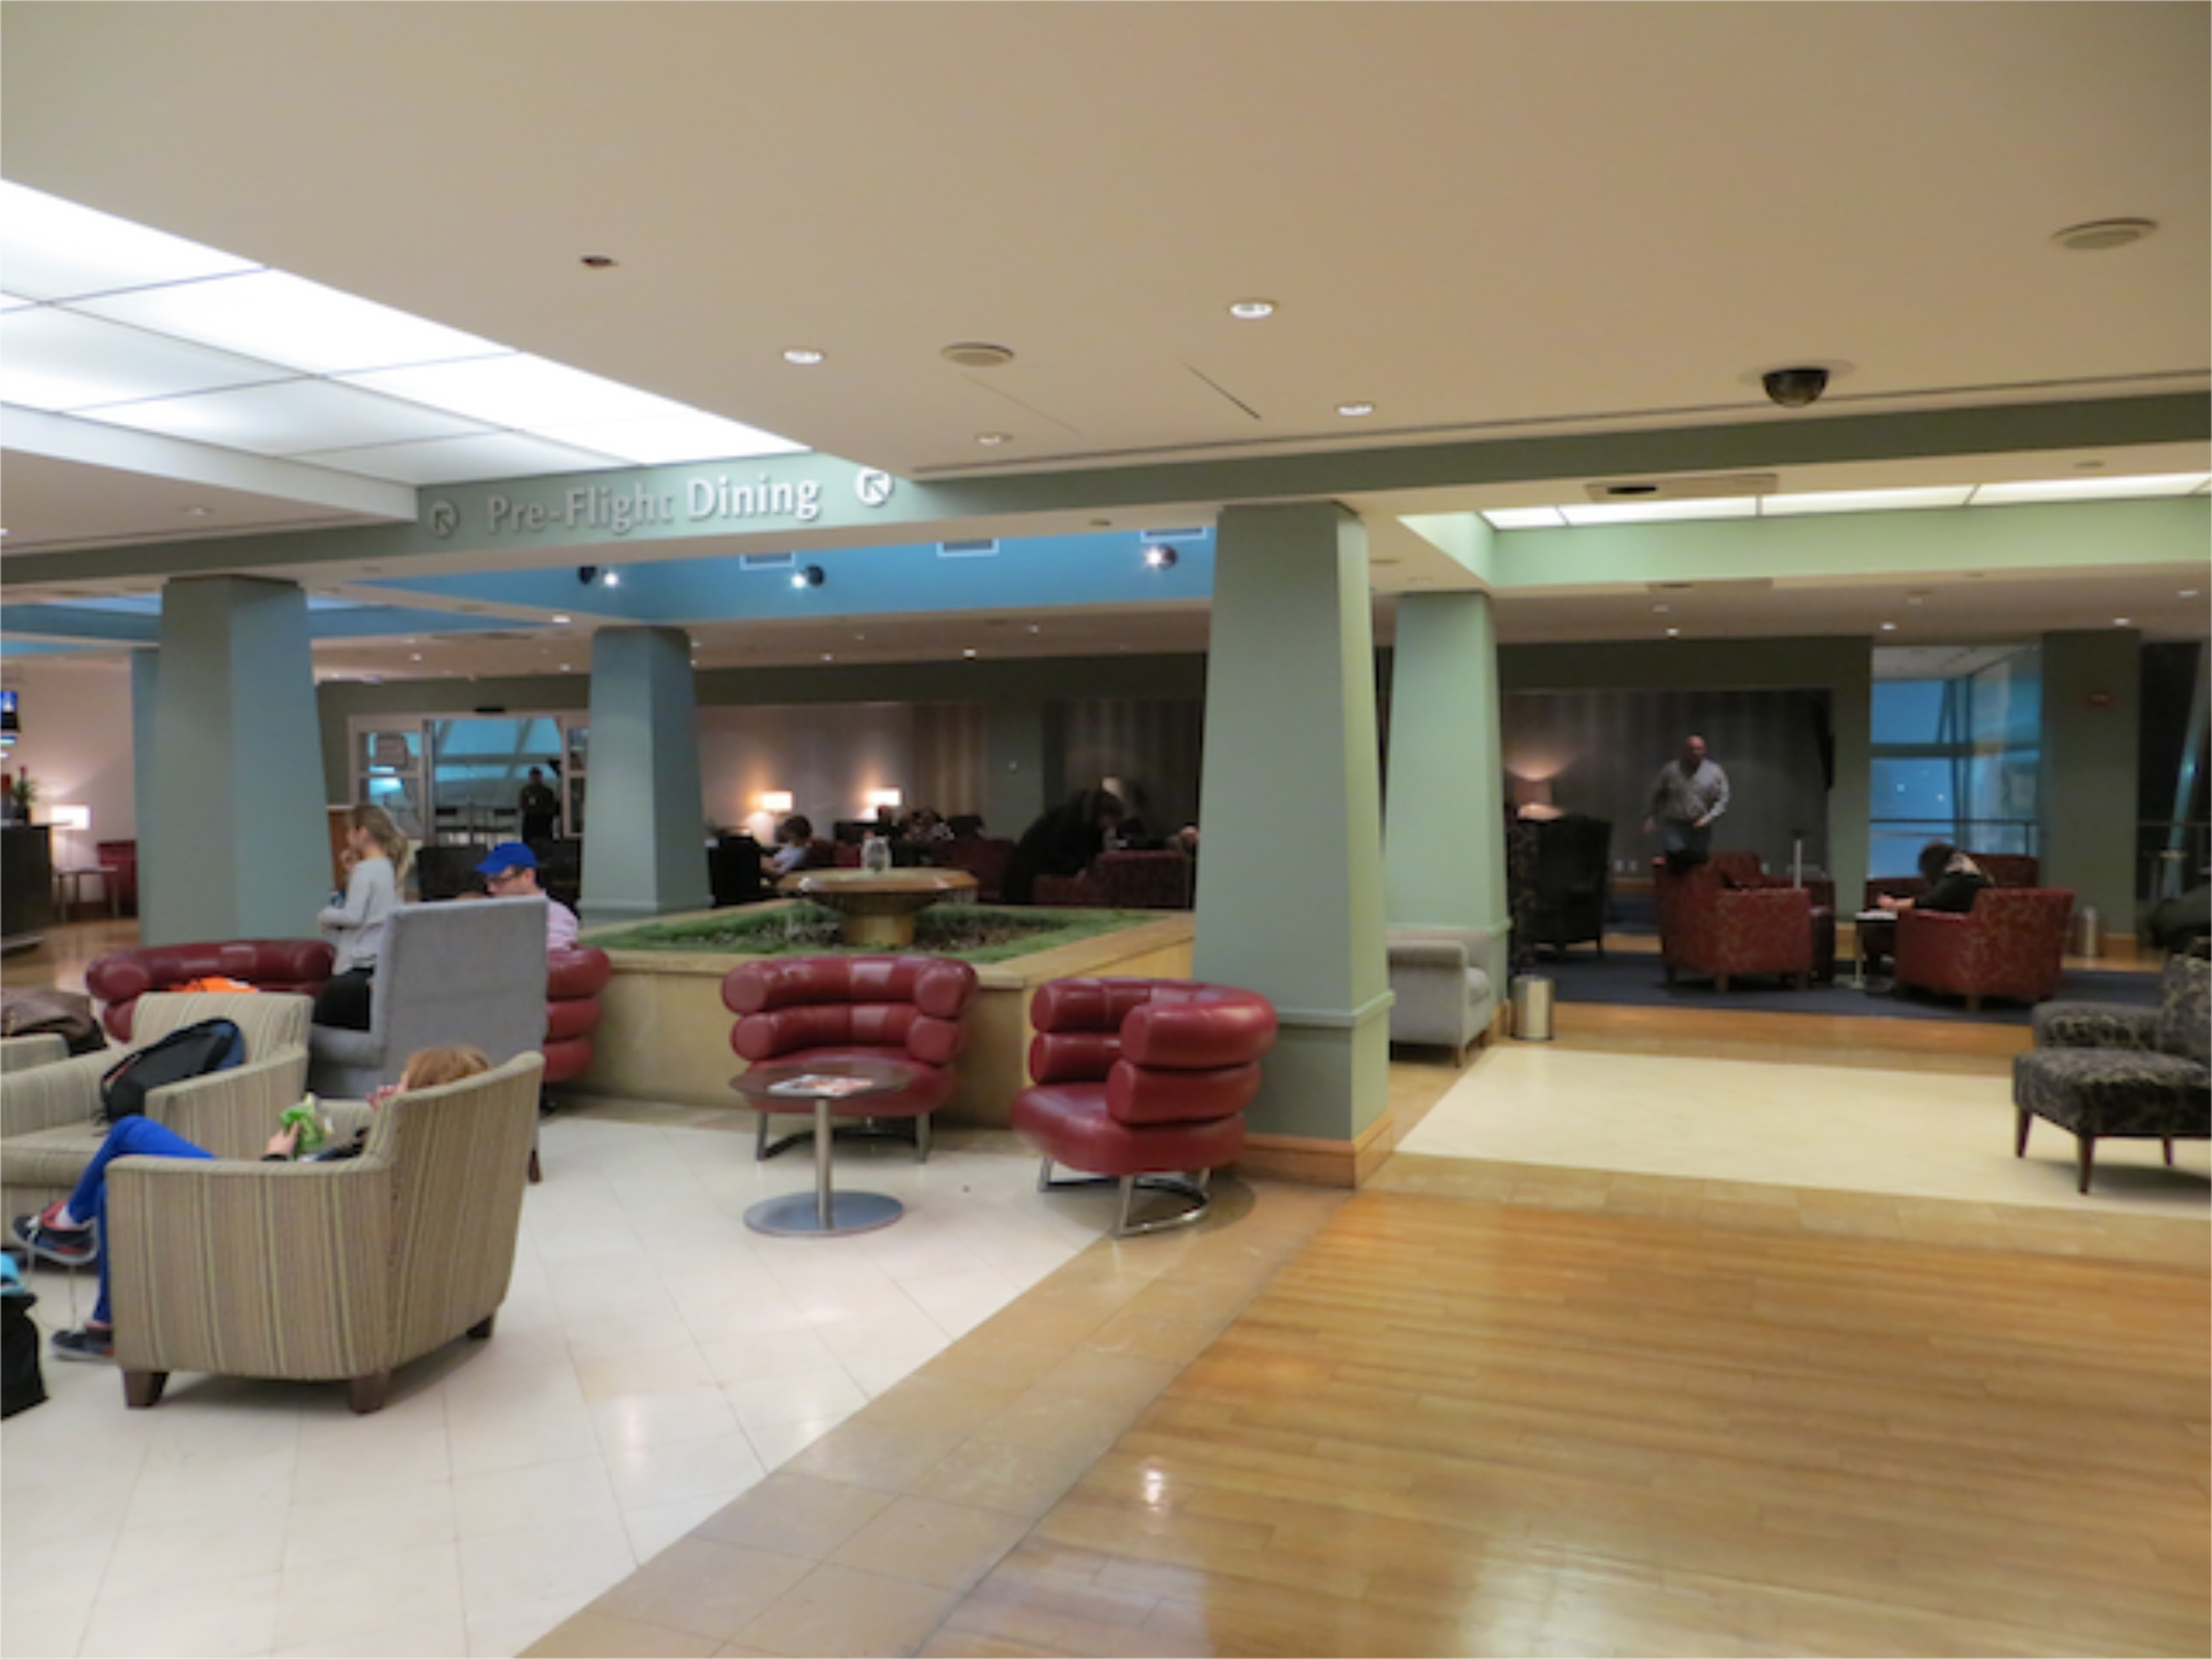 British Airways Galleries Lounge JFK - Fountain and Seating Area